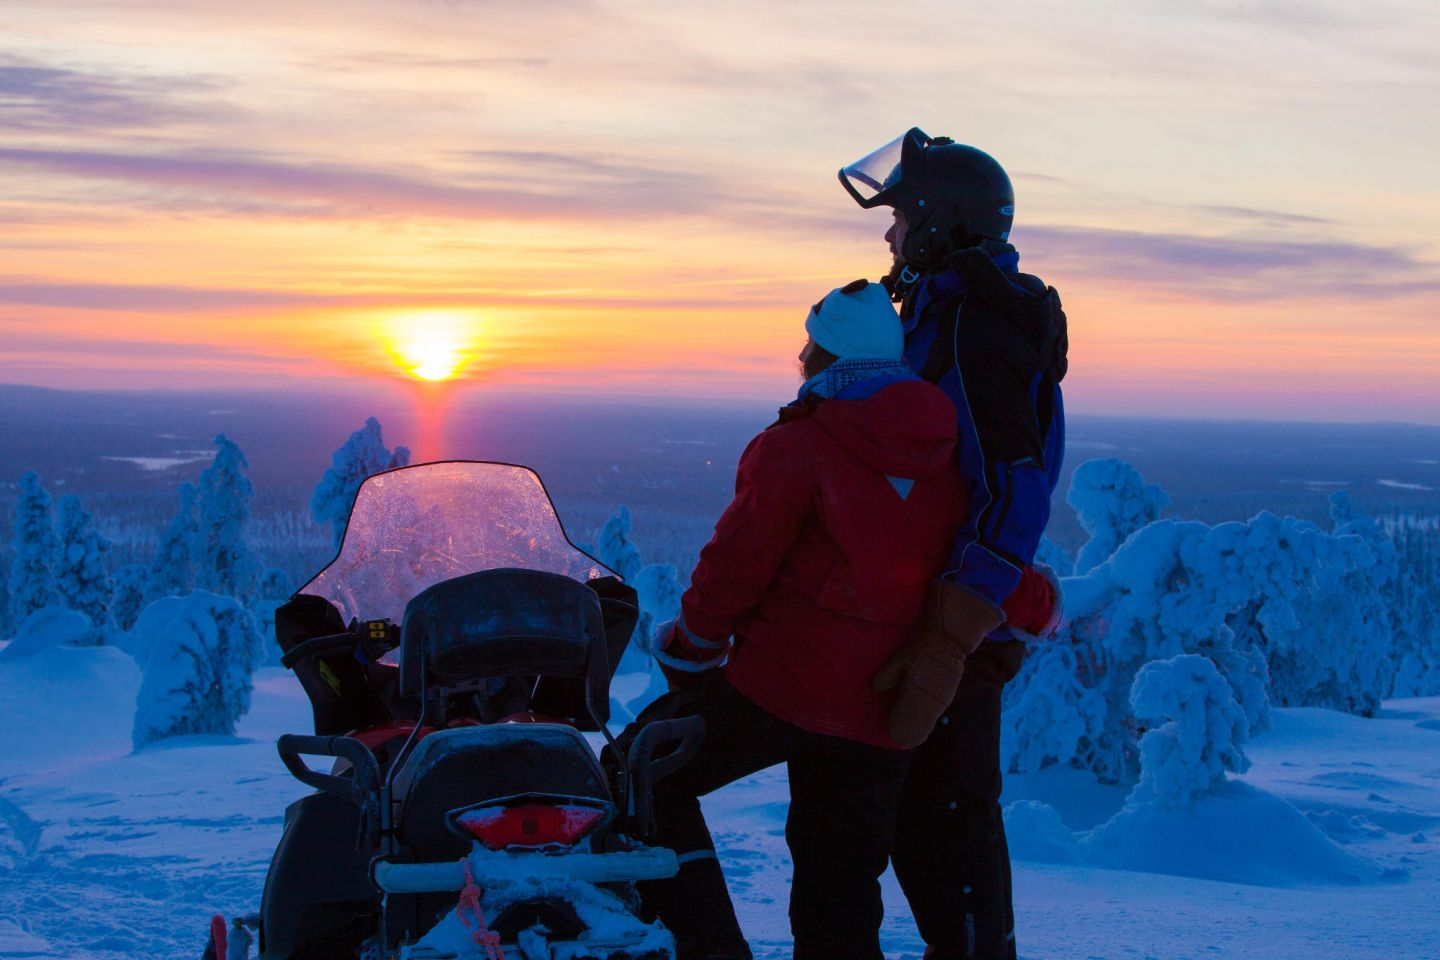 snowmobile ride at sunset during winter in Lapland